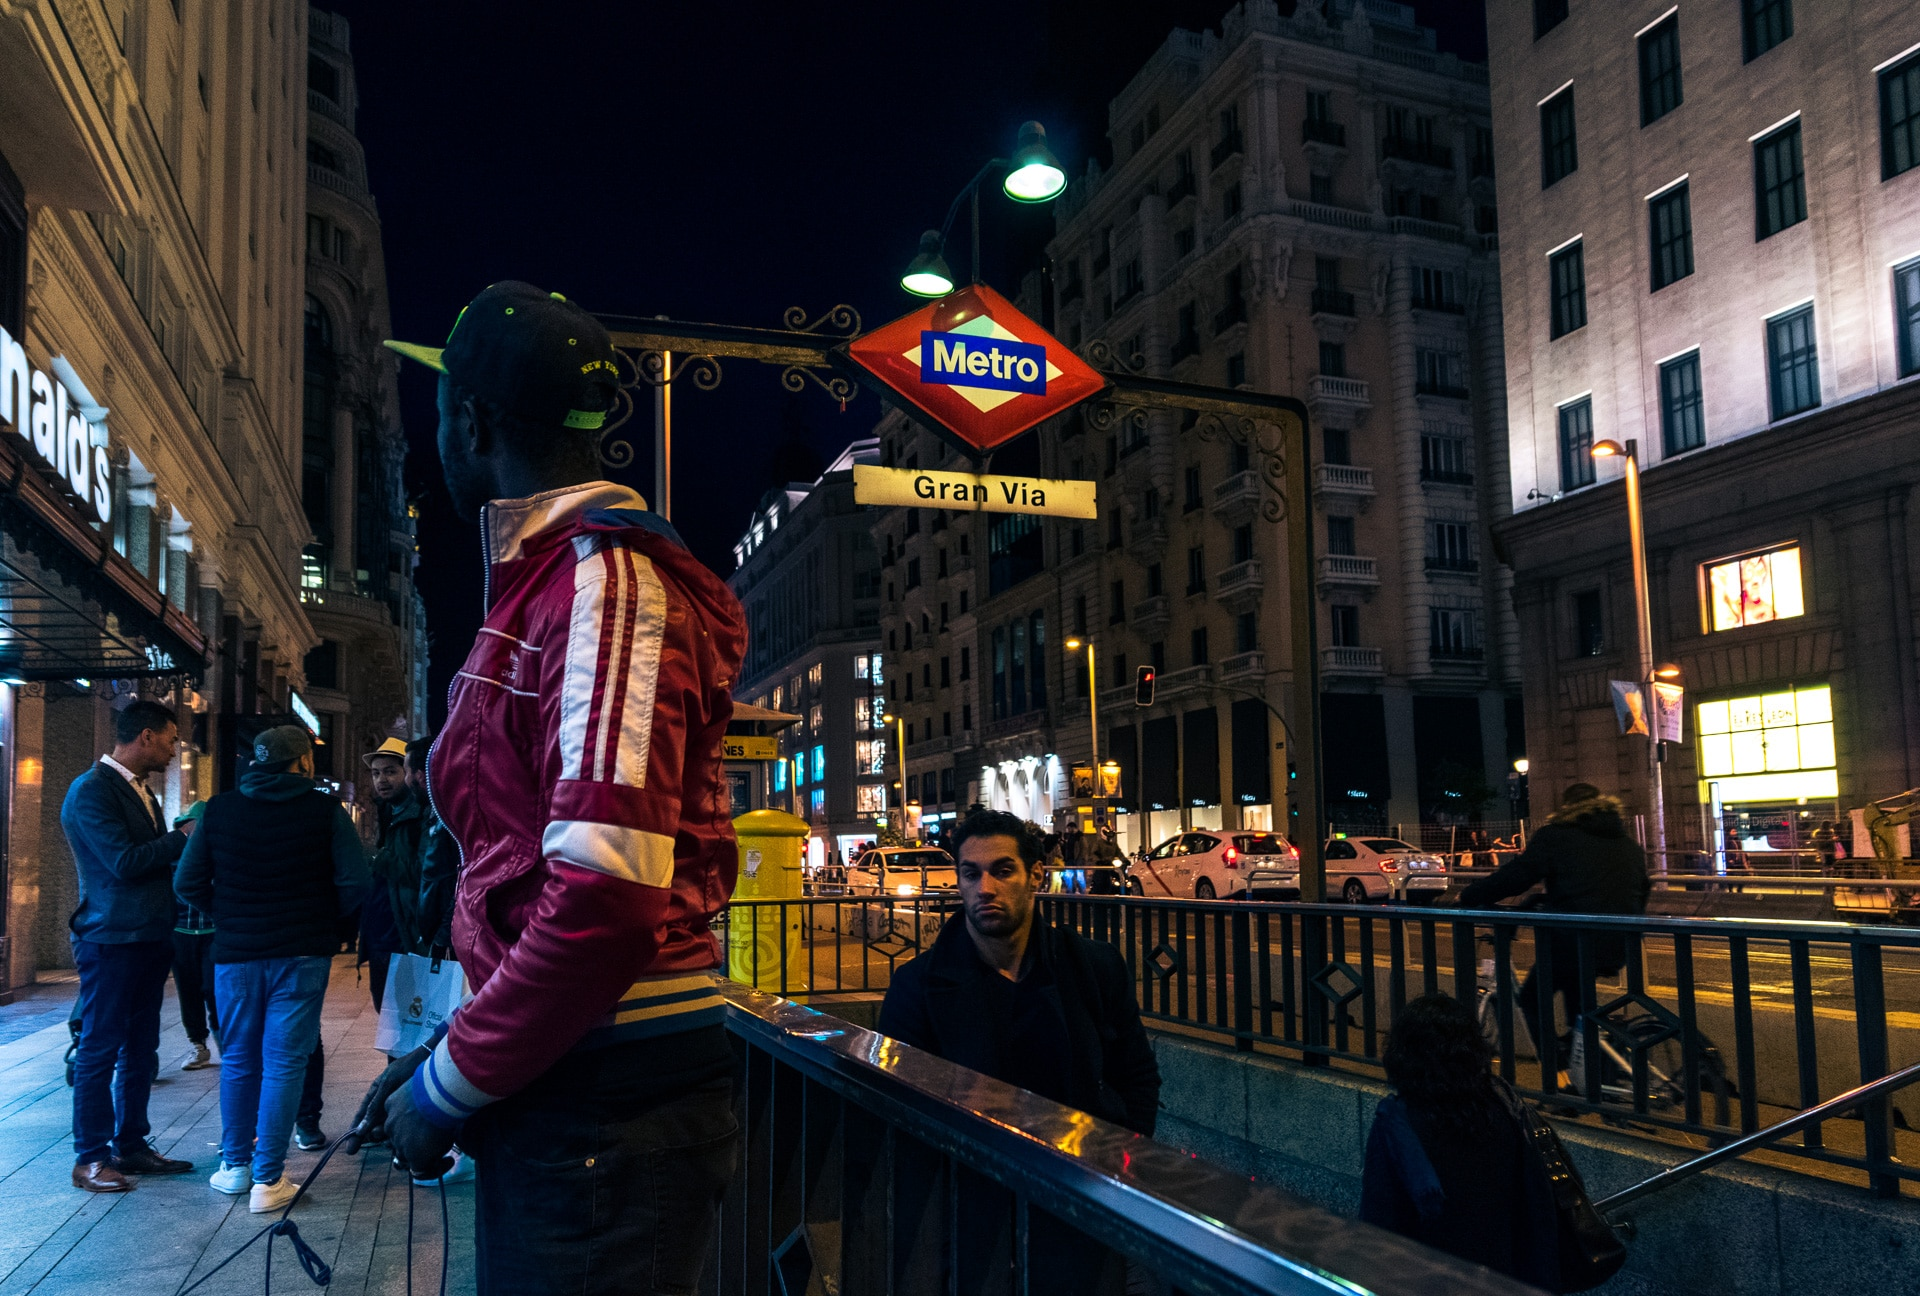 a street merchan outside the gran via metro station looking around in case the police show up